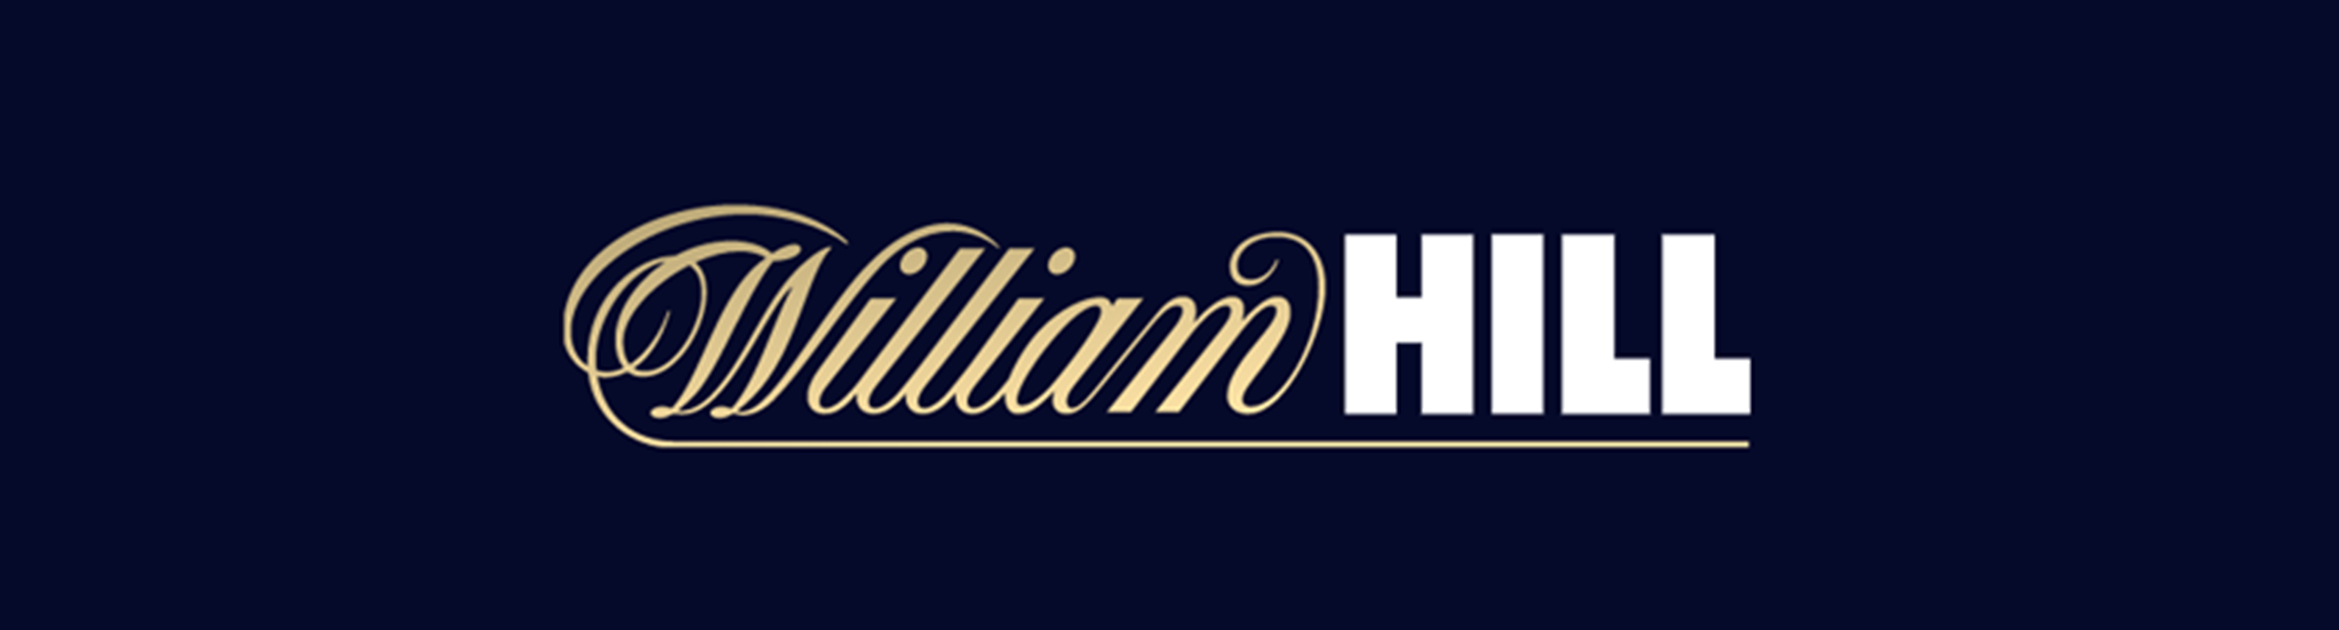 william hlll